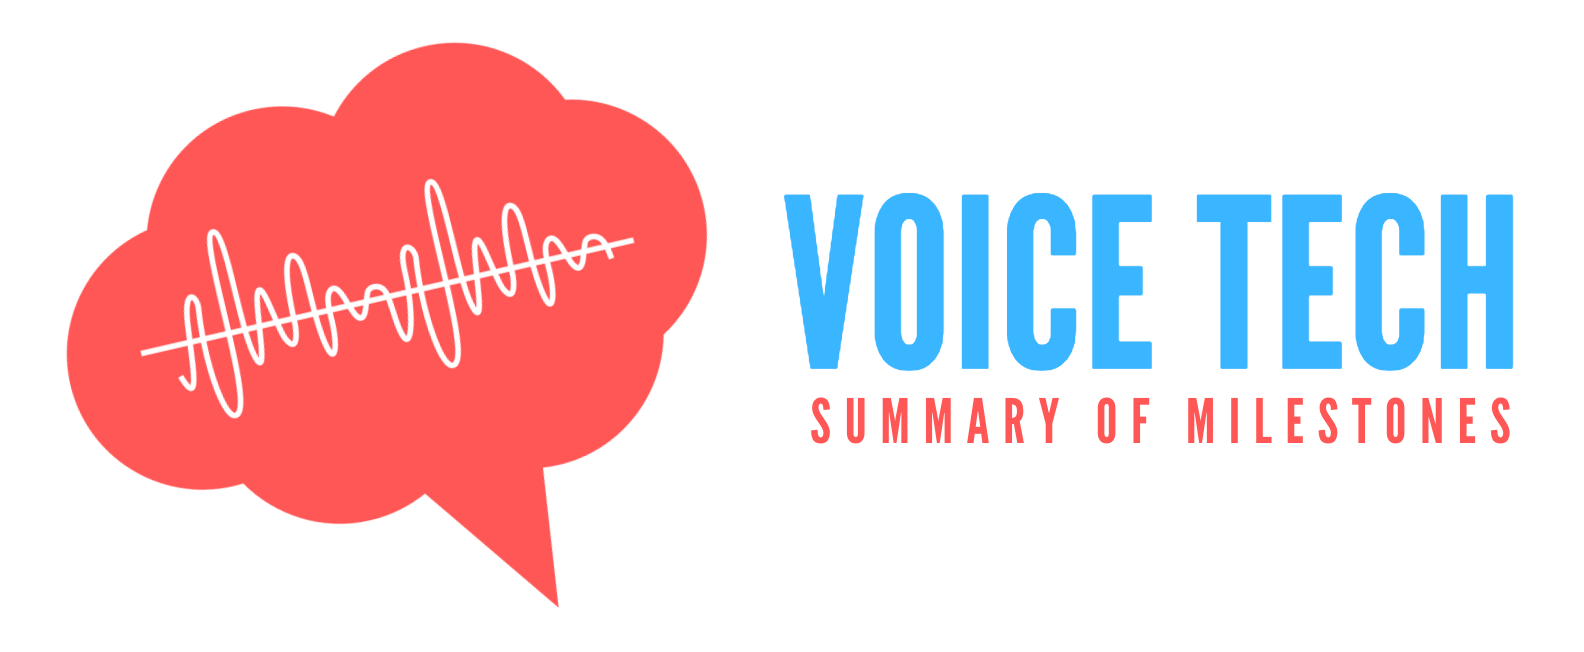 The Voice Revolution: A Short History